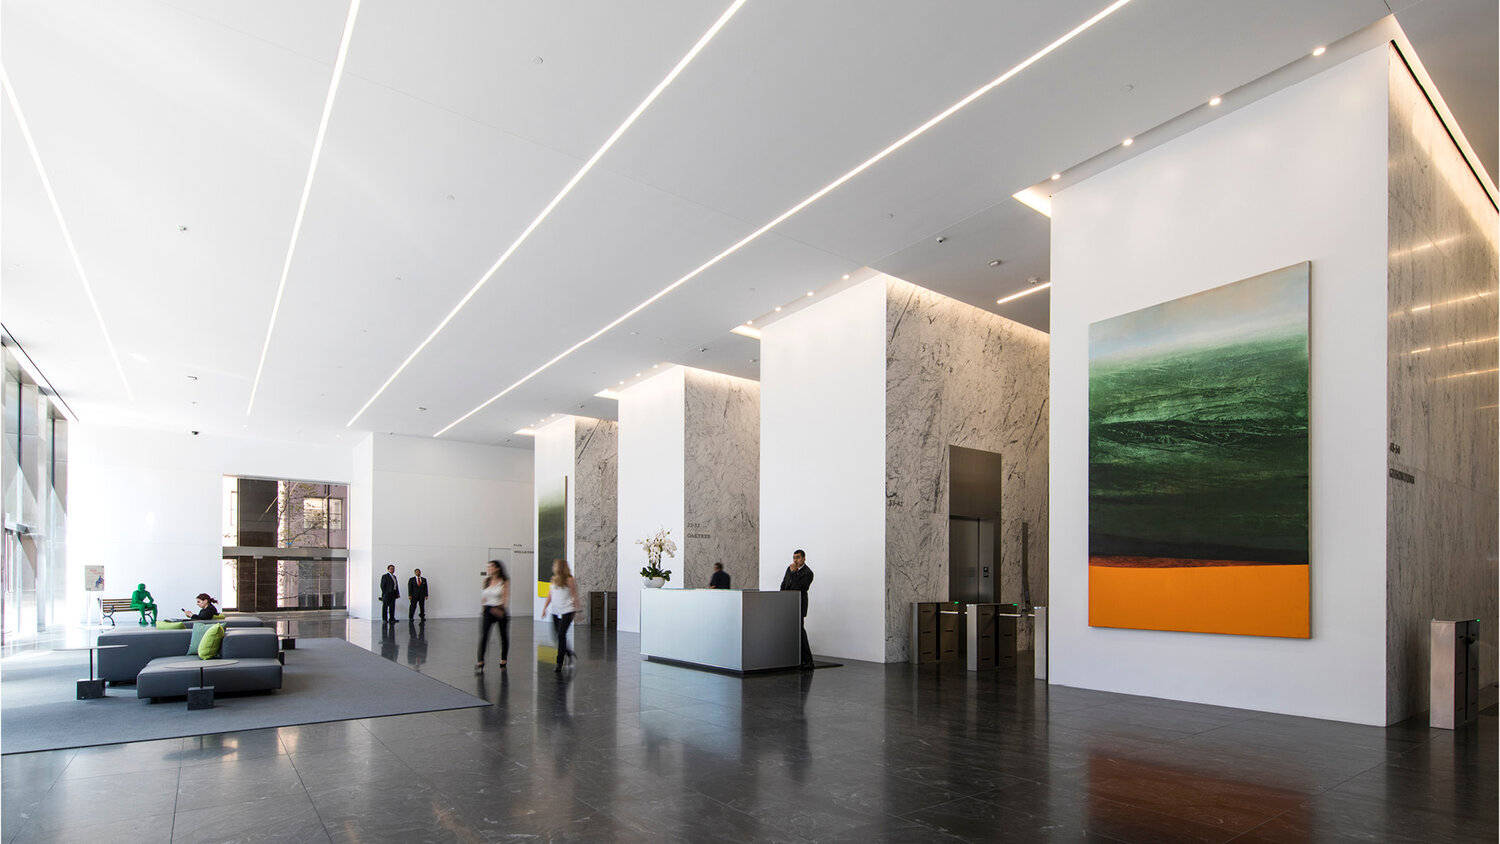 Two paintings of the Sierras series by Antonio Murado in Wells Fargo Center North Tower Lobby